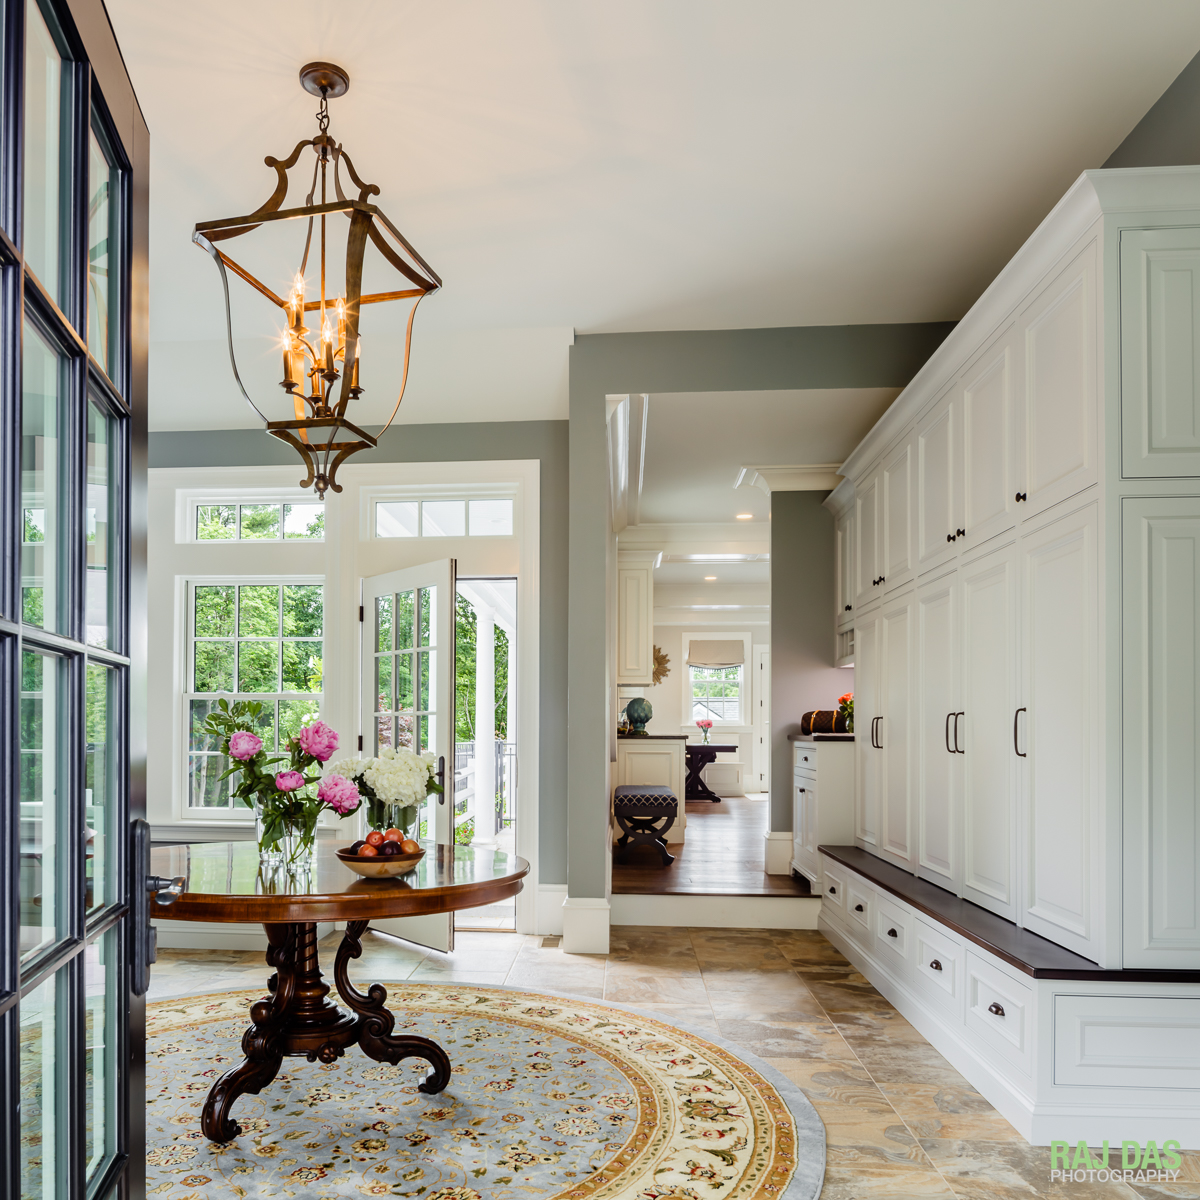 Mud room and view into outdoor patio and kitchen area